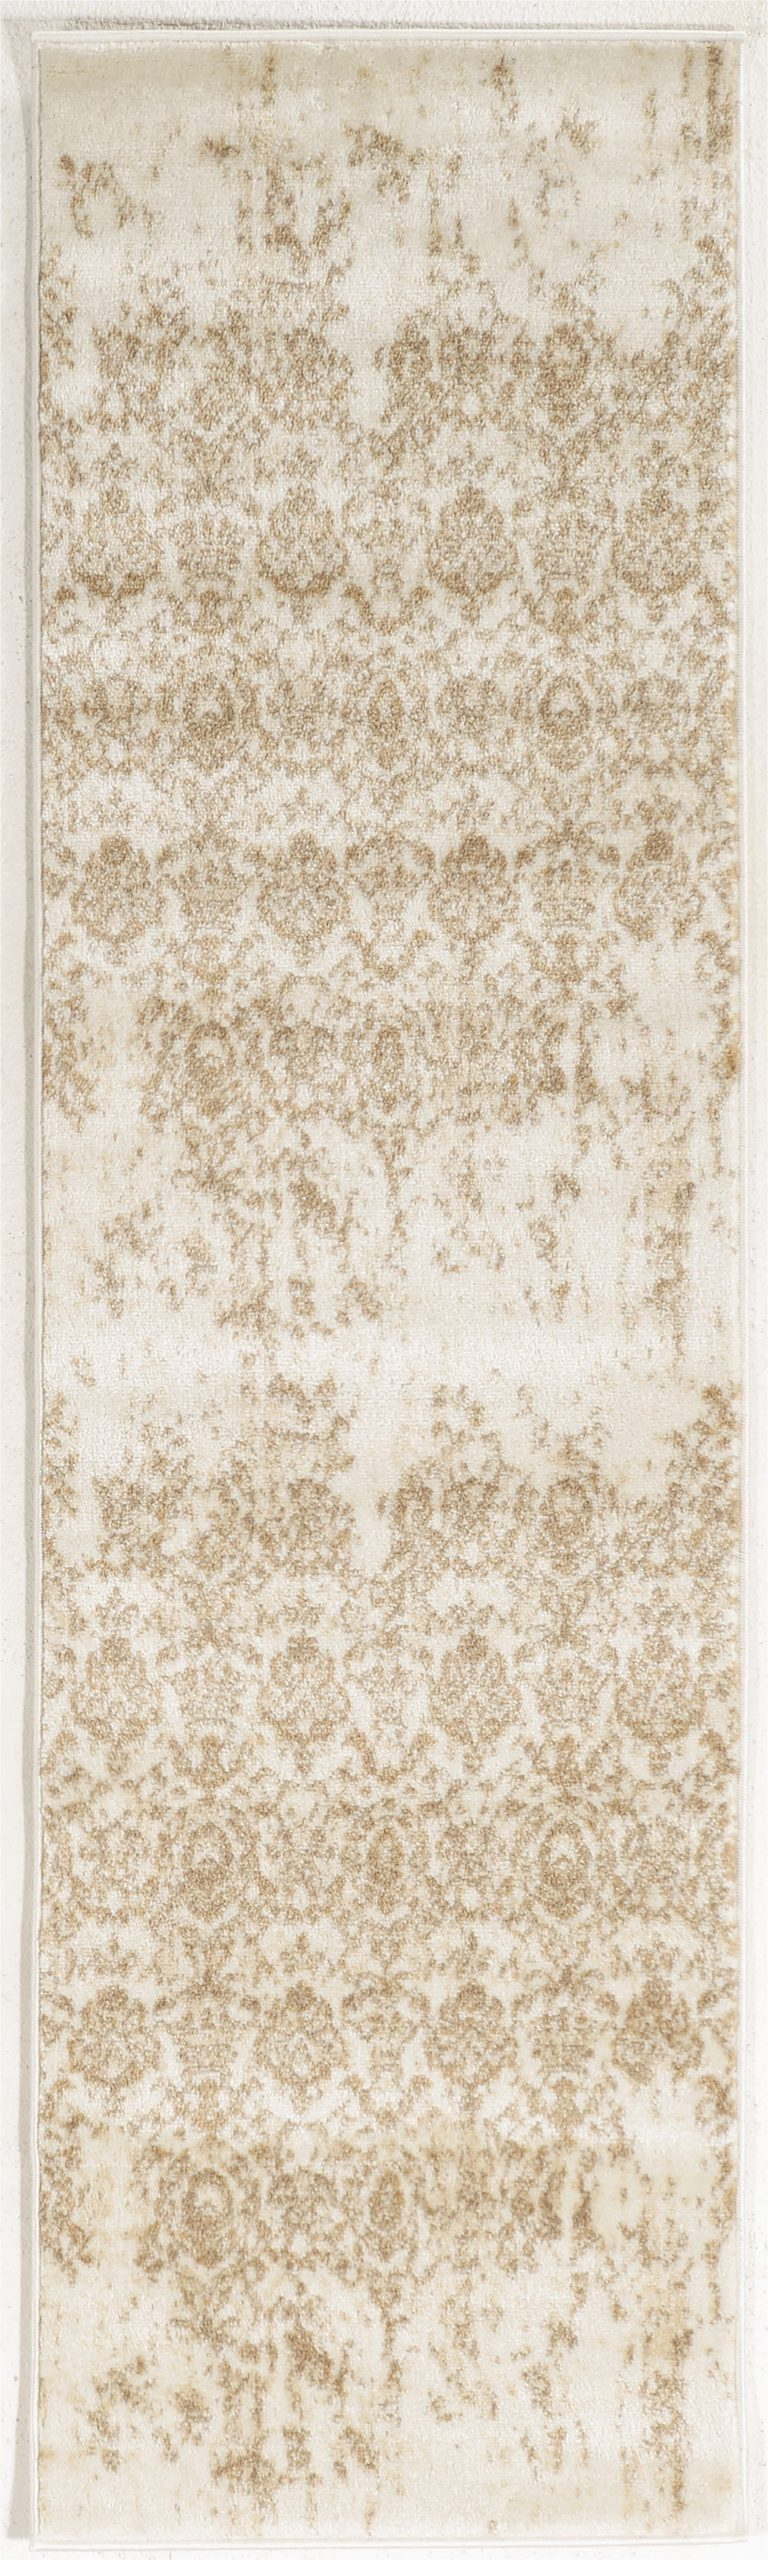 heer oriental ivorycream area rug